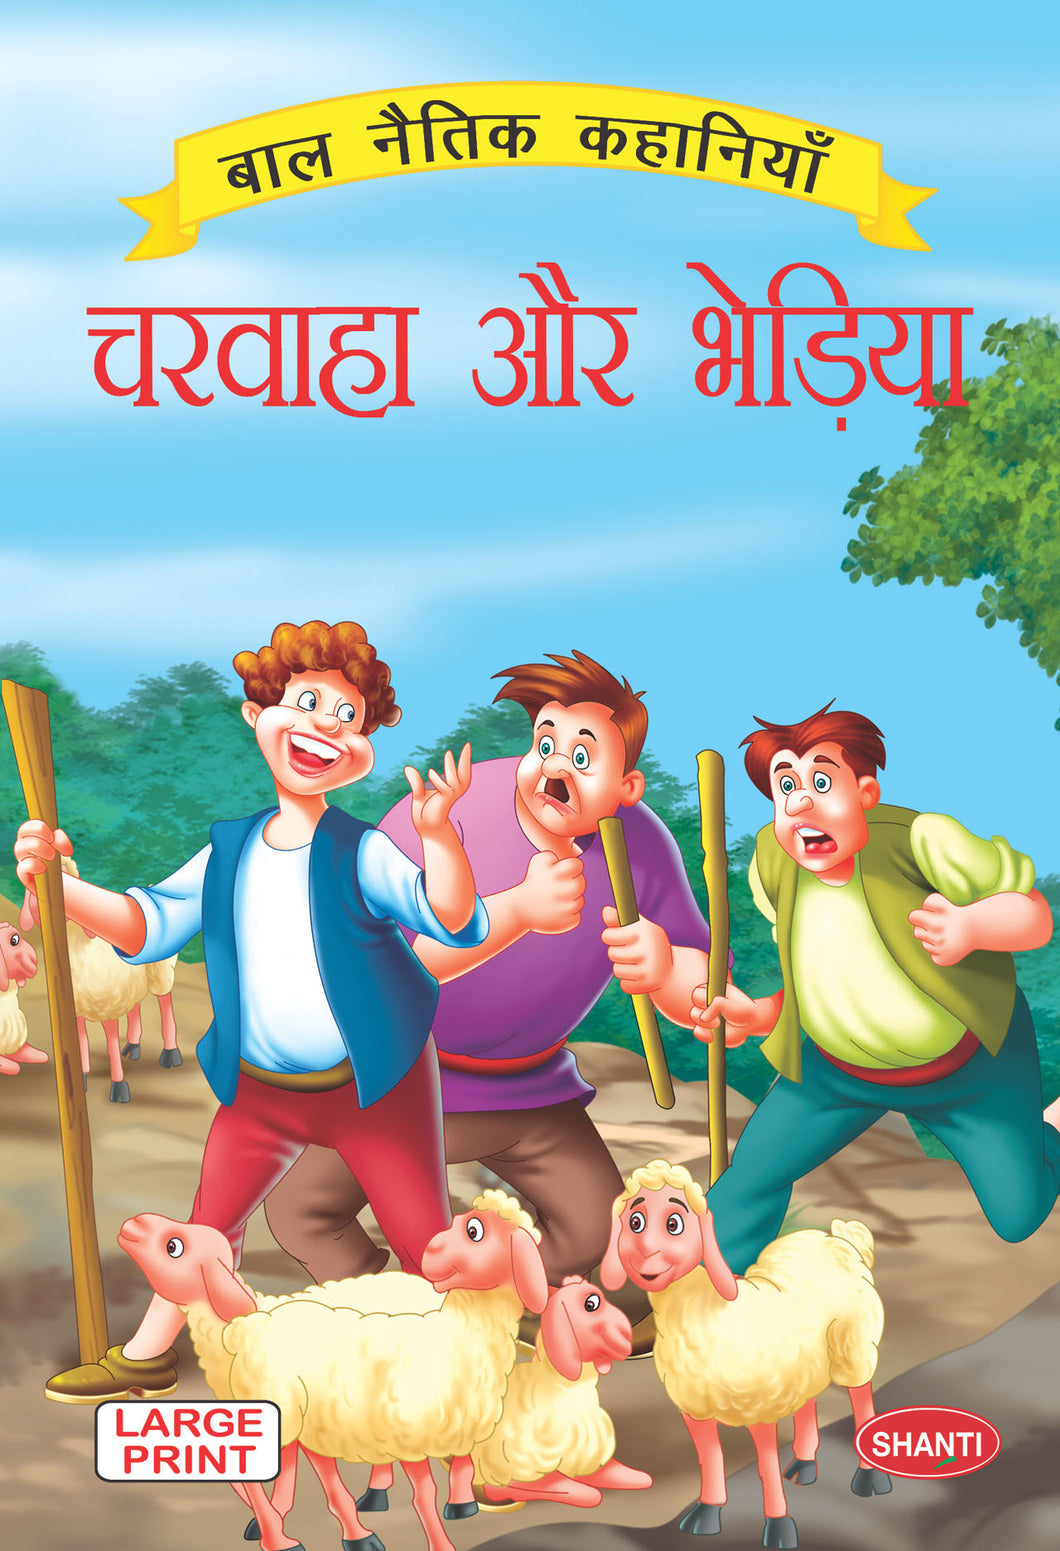 Moral stories for children-Moral Stories (Hindi) - Charwaha aur Bhediya